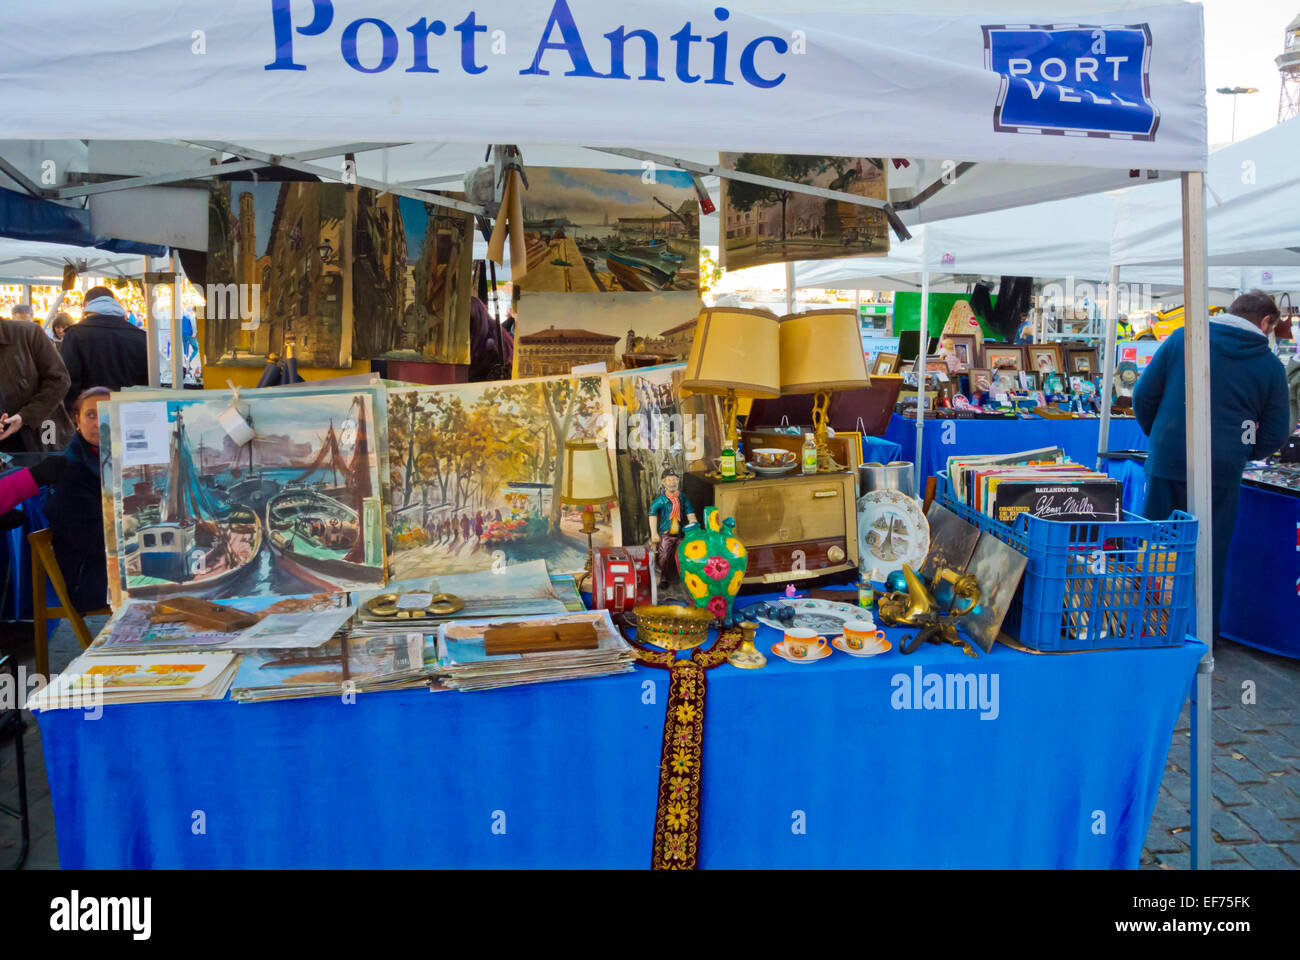 Port Antic, flea and antiques market, Port Vell, Barcelona, Spain - Stock Image